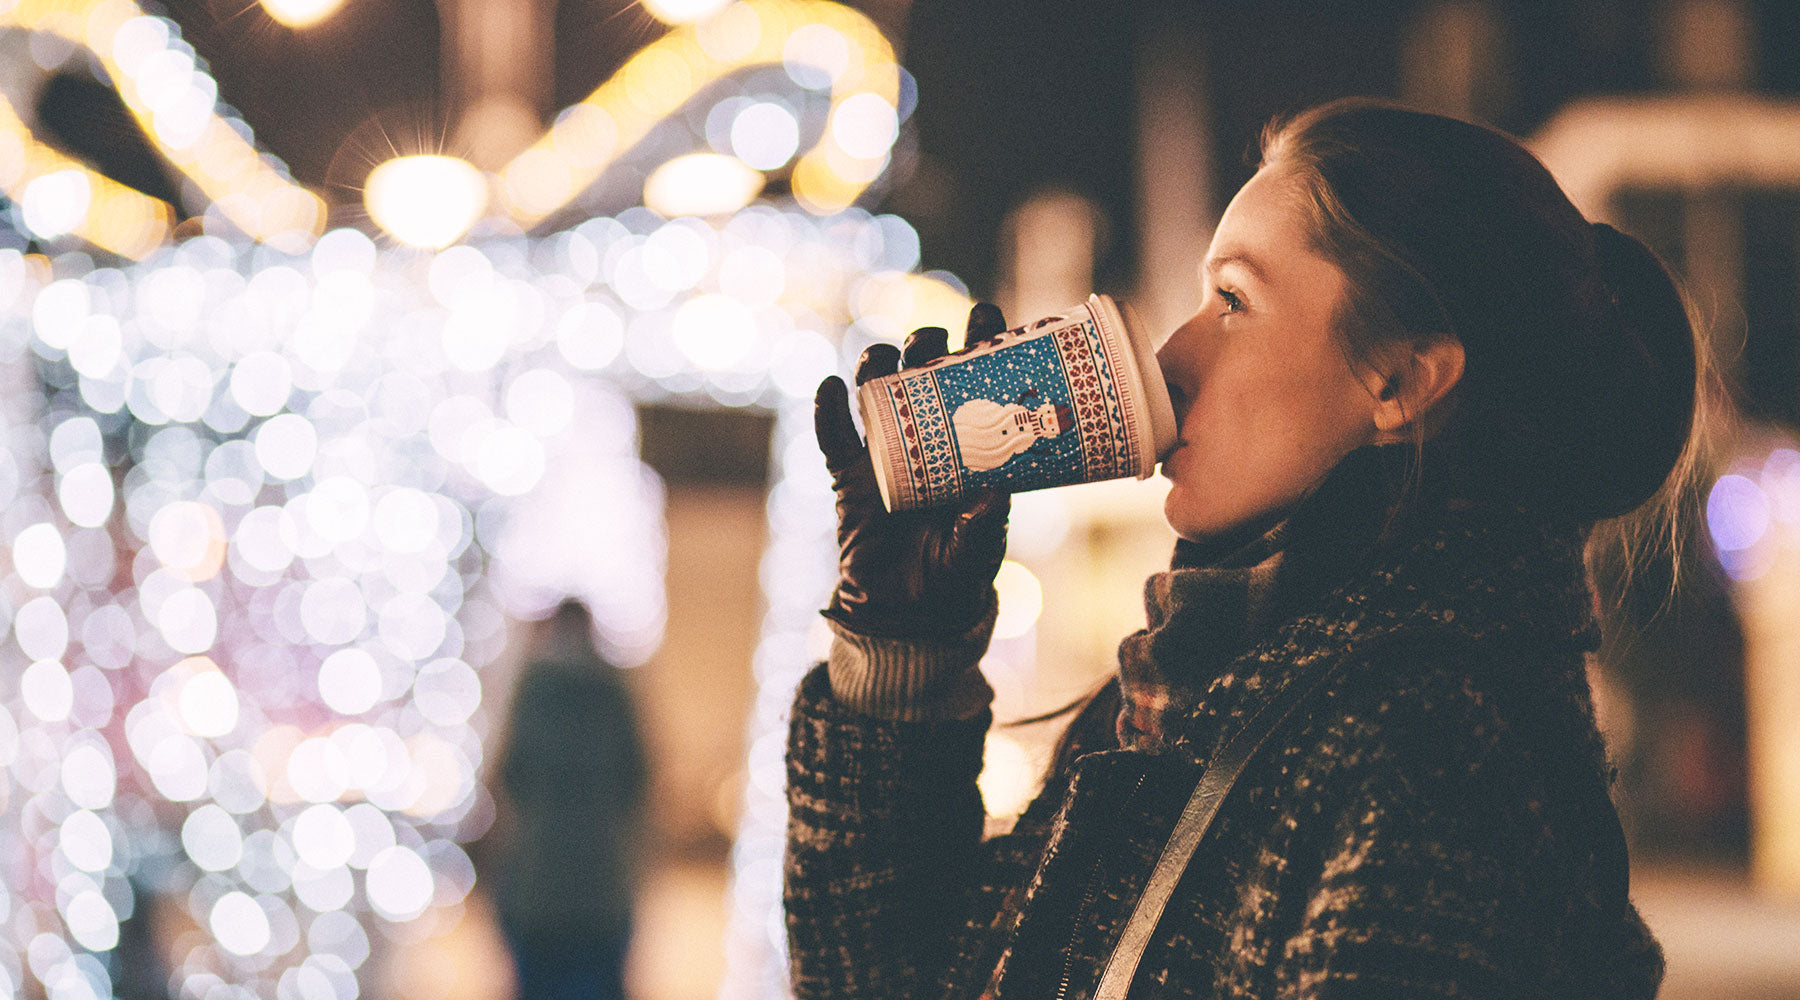 Woman drinking warm holiday drink looking at lights